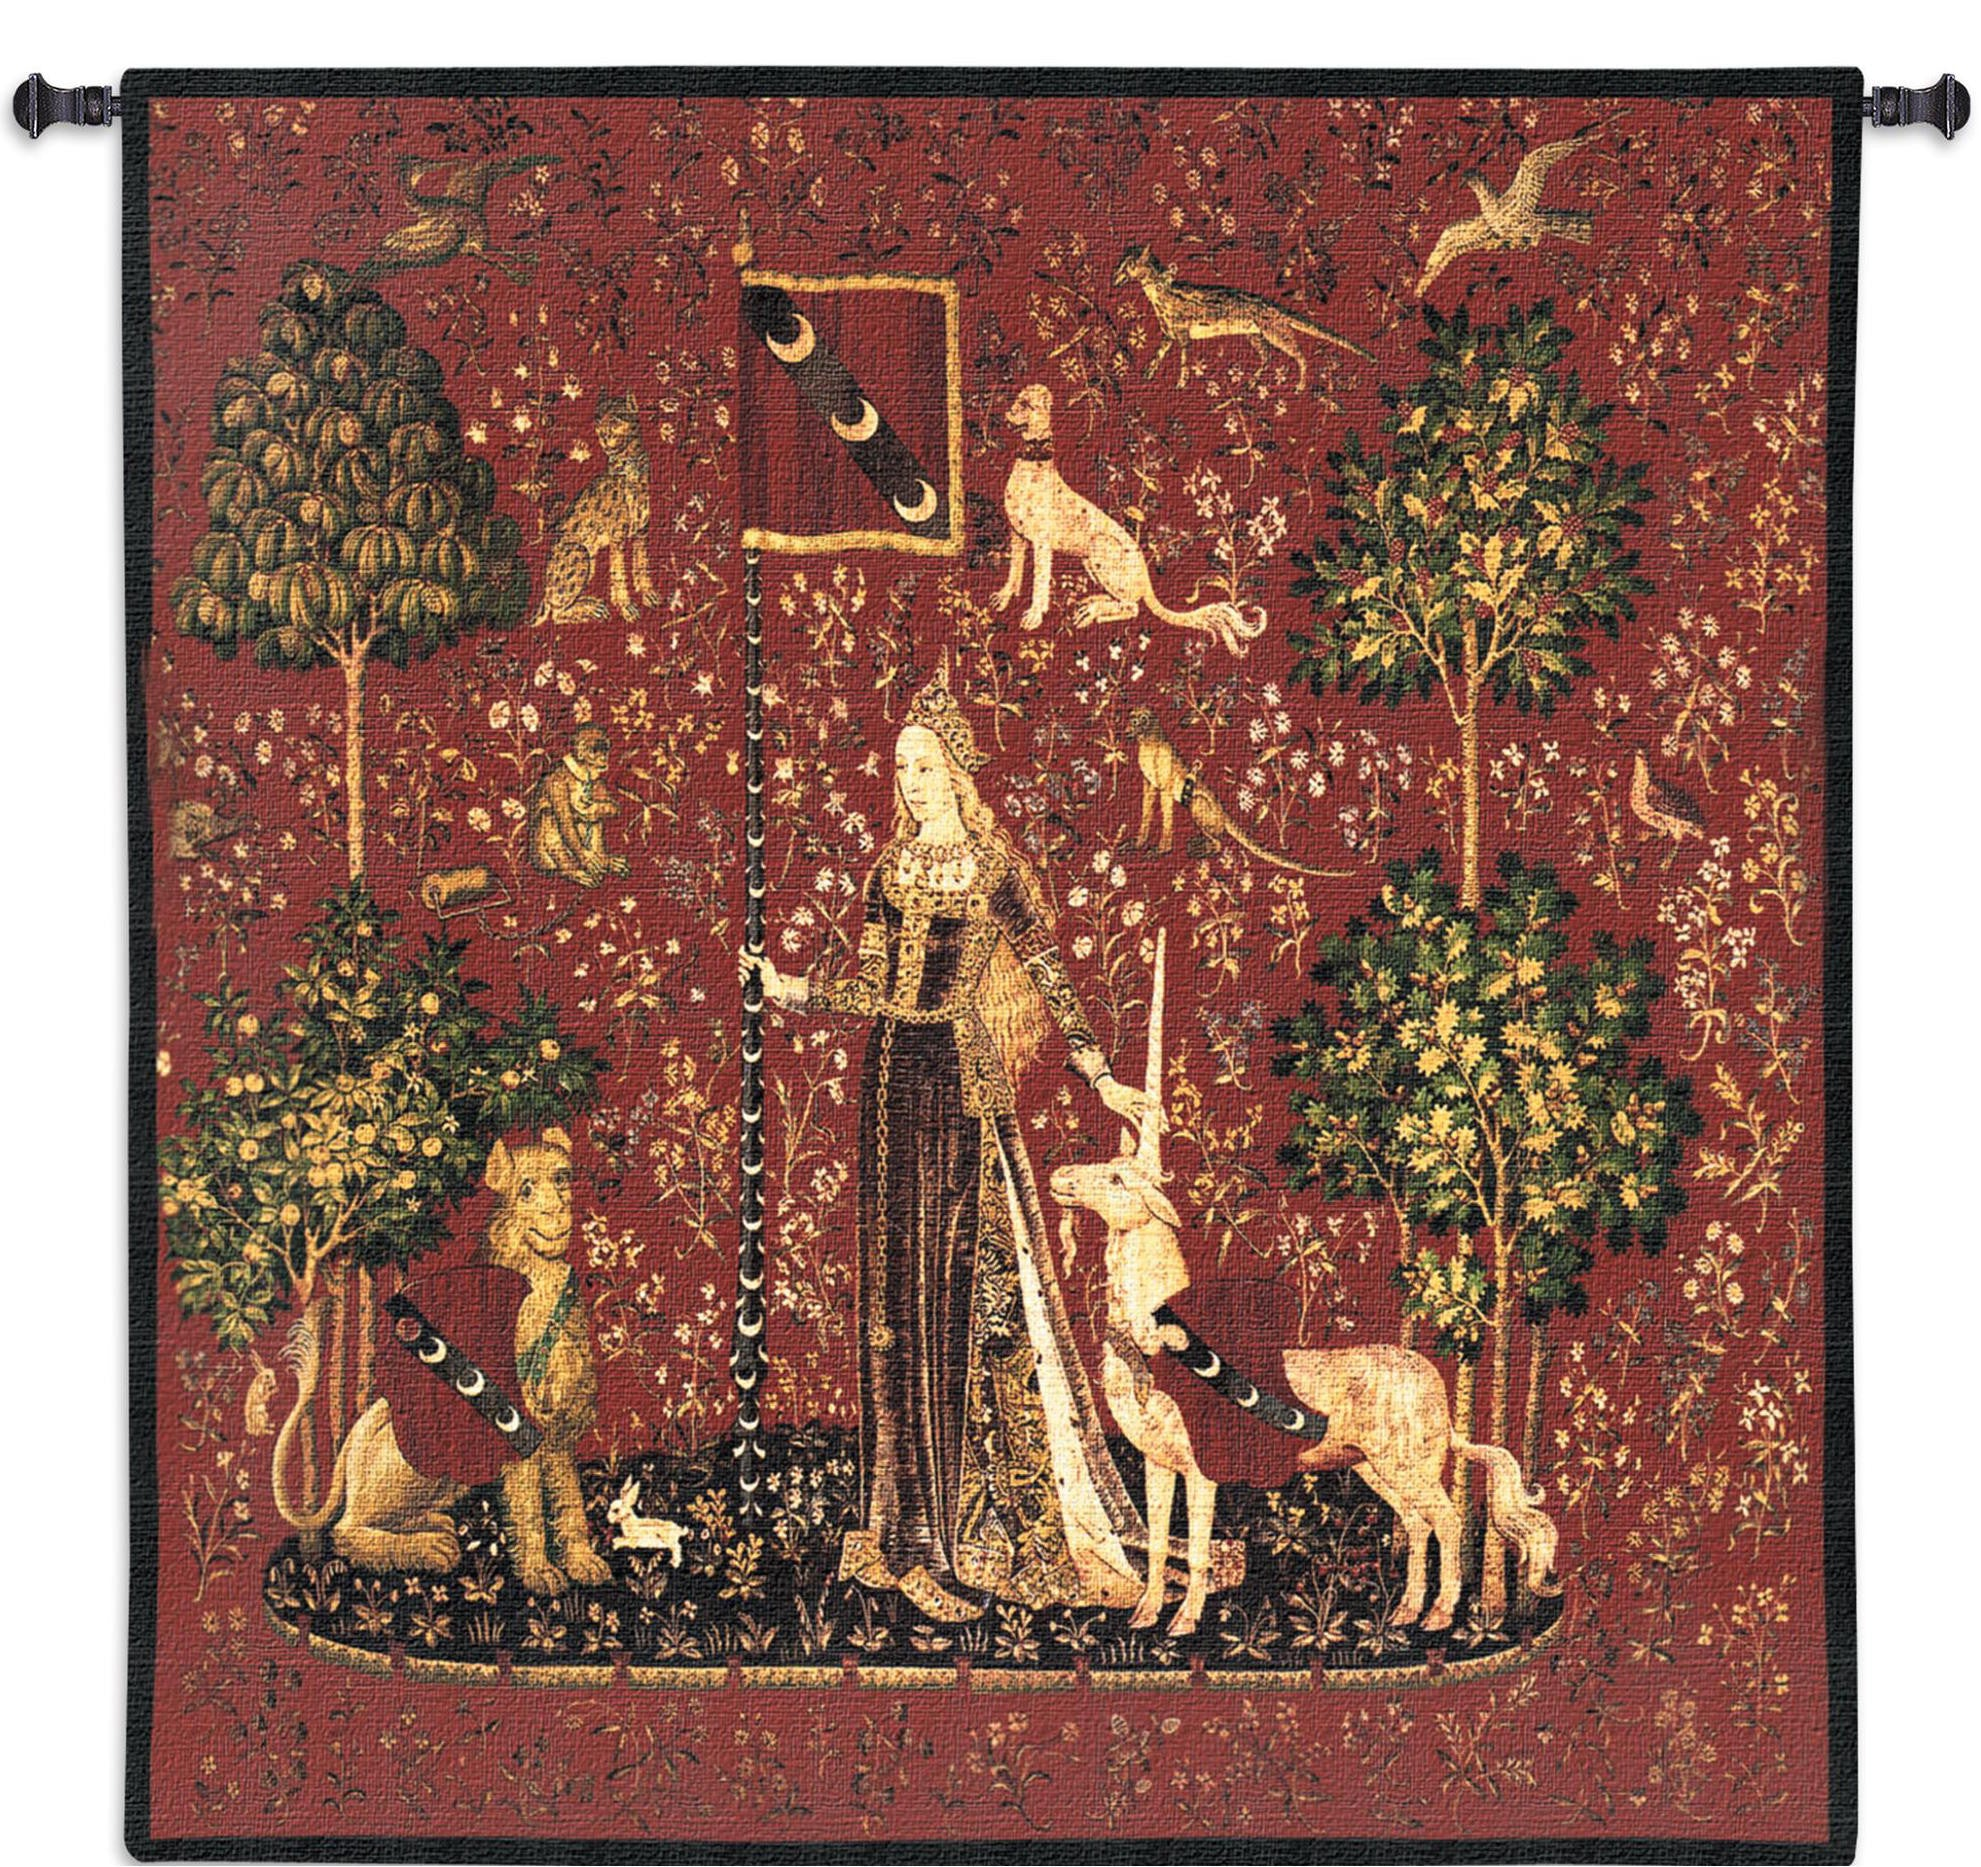 Lady And the Unicorn Touch Wall Hanging